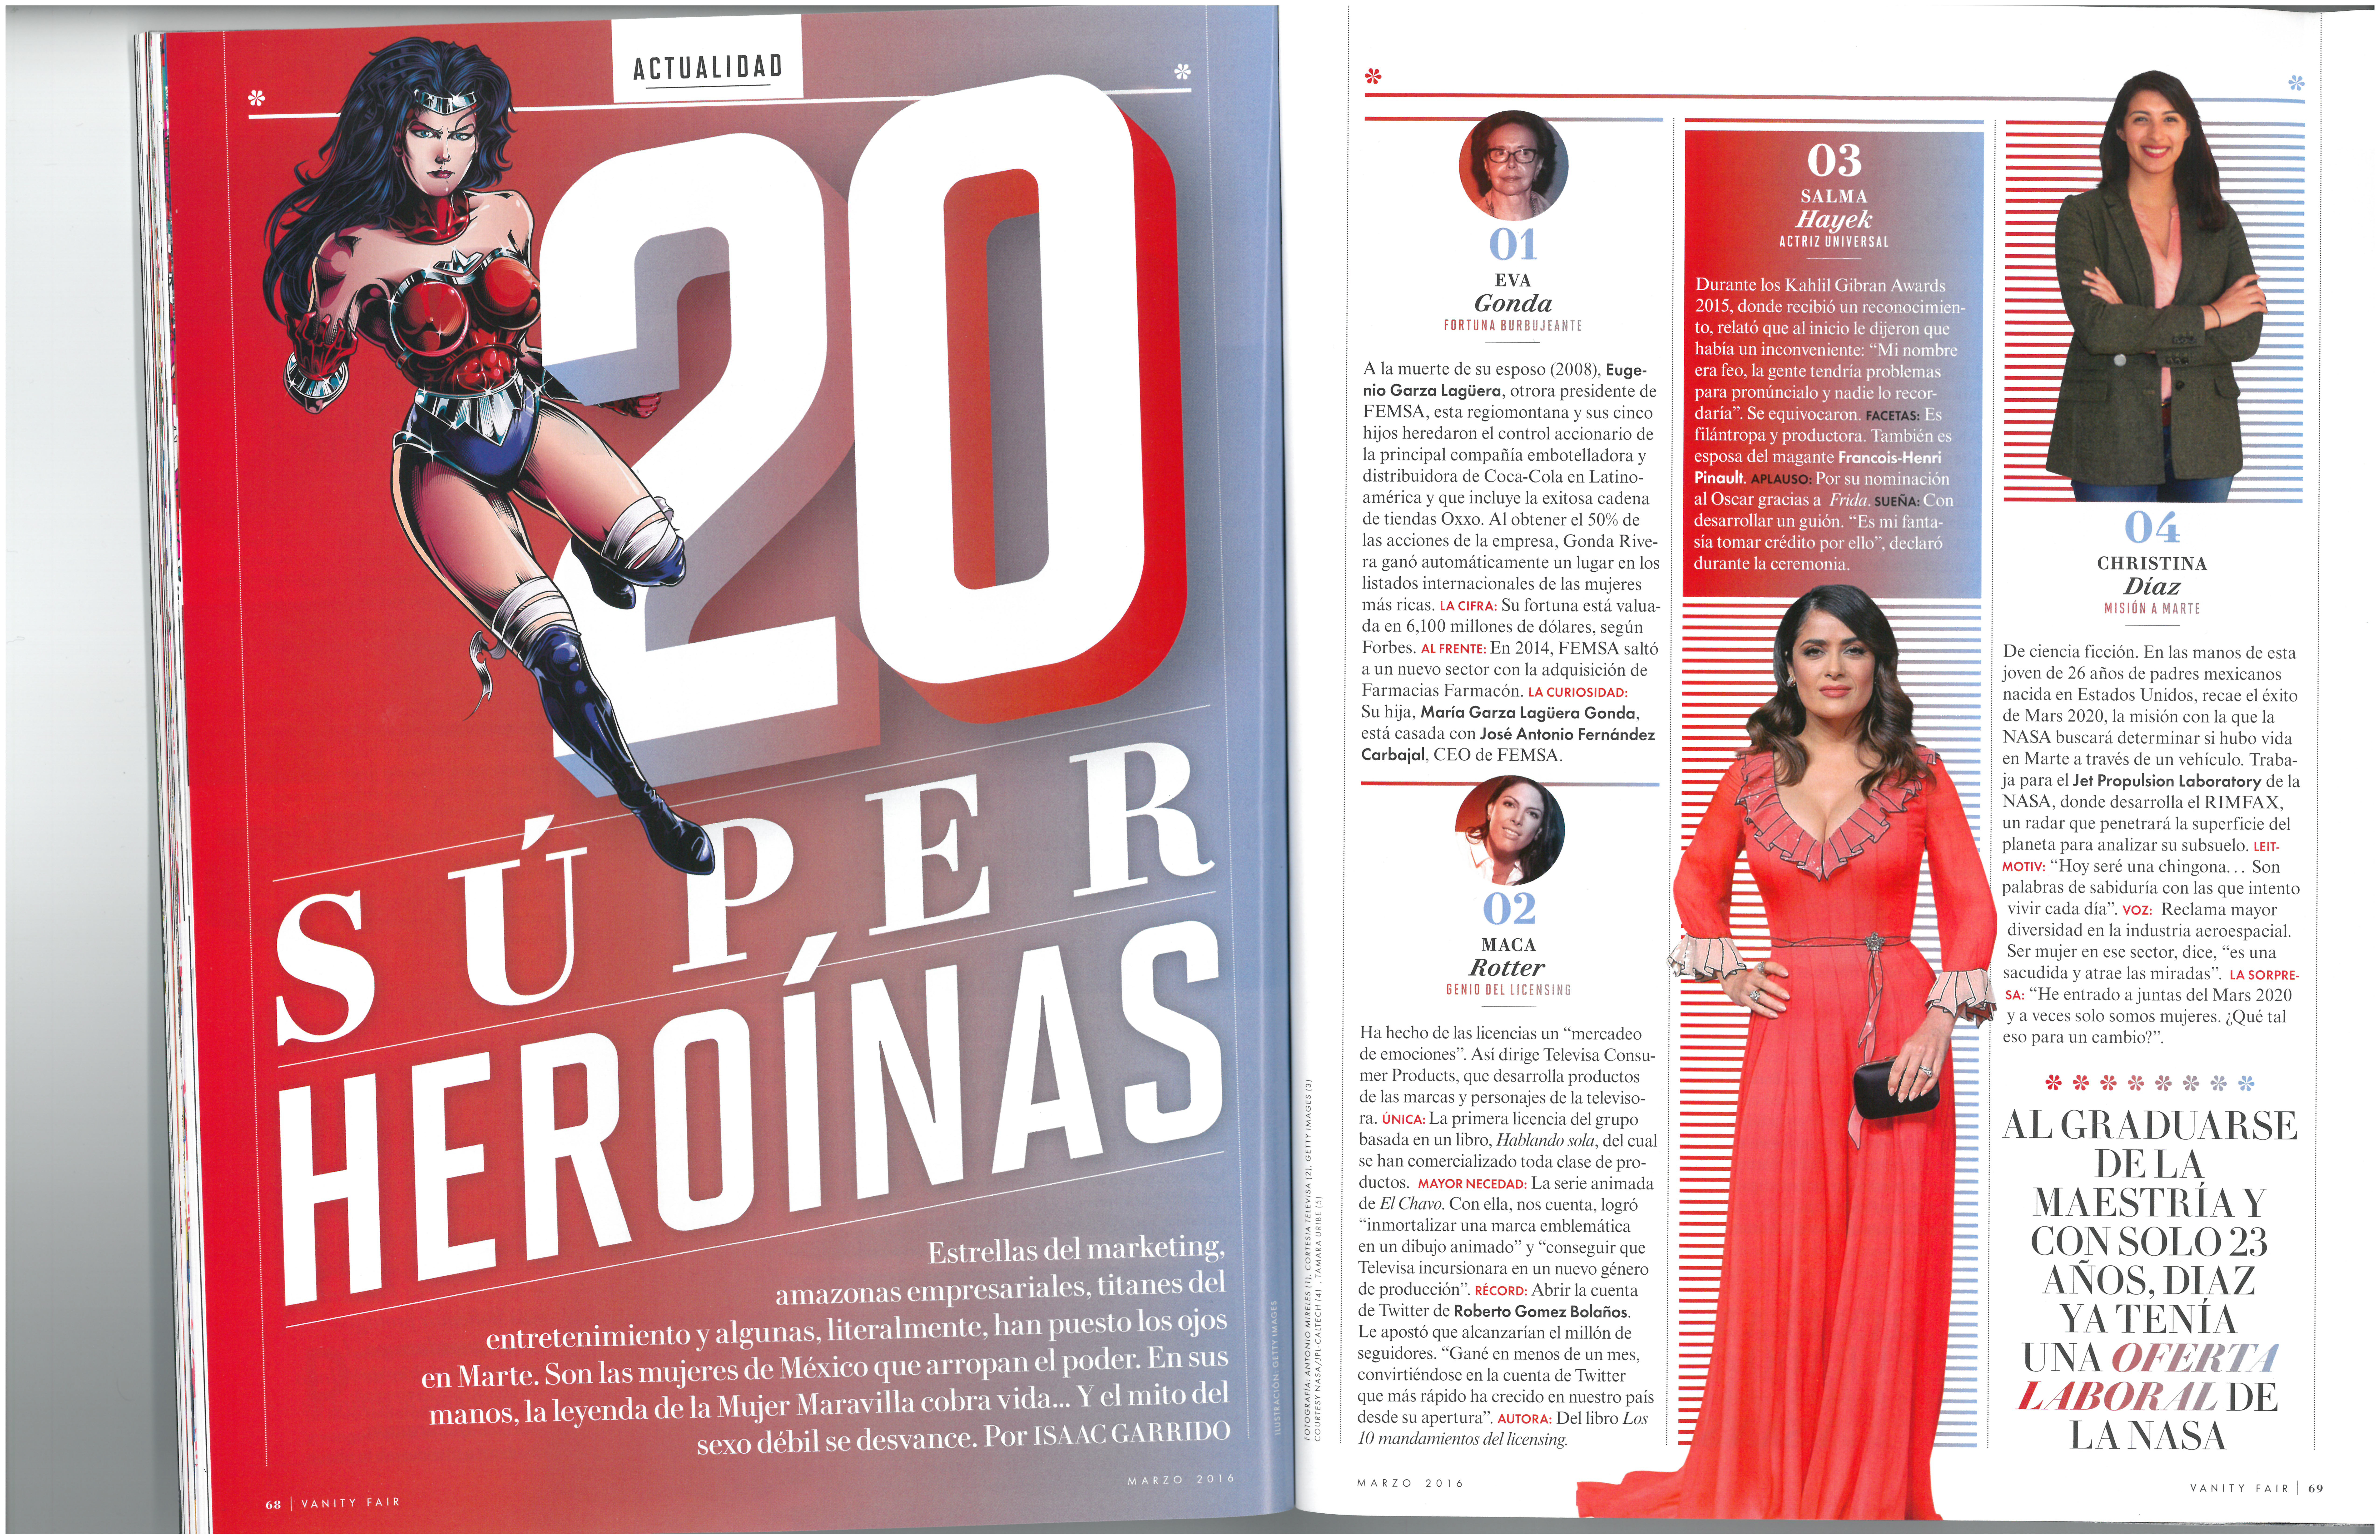 Christina featured in Vanity Fair Mexico